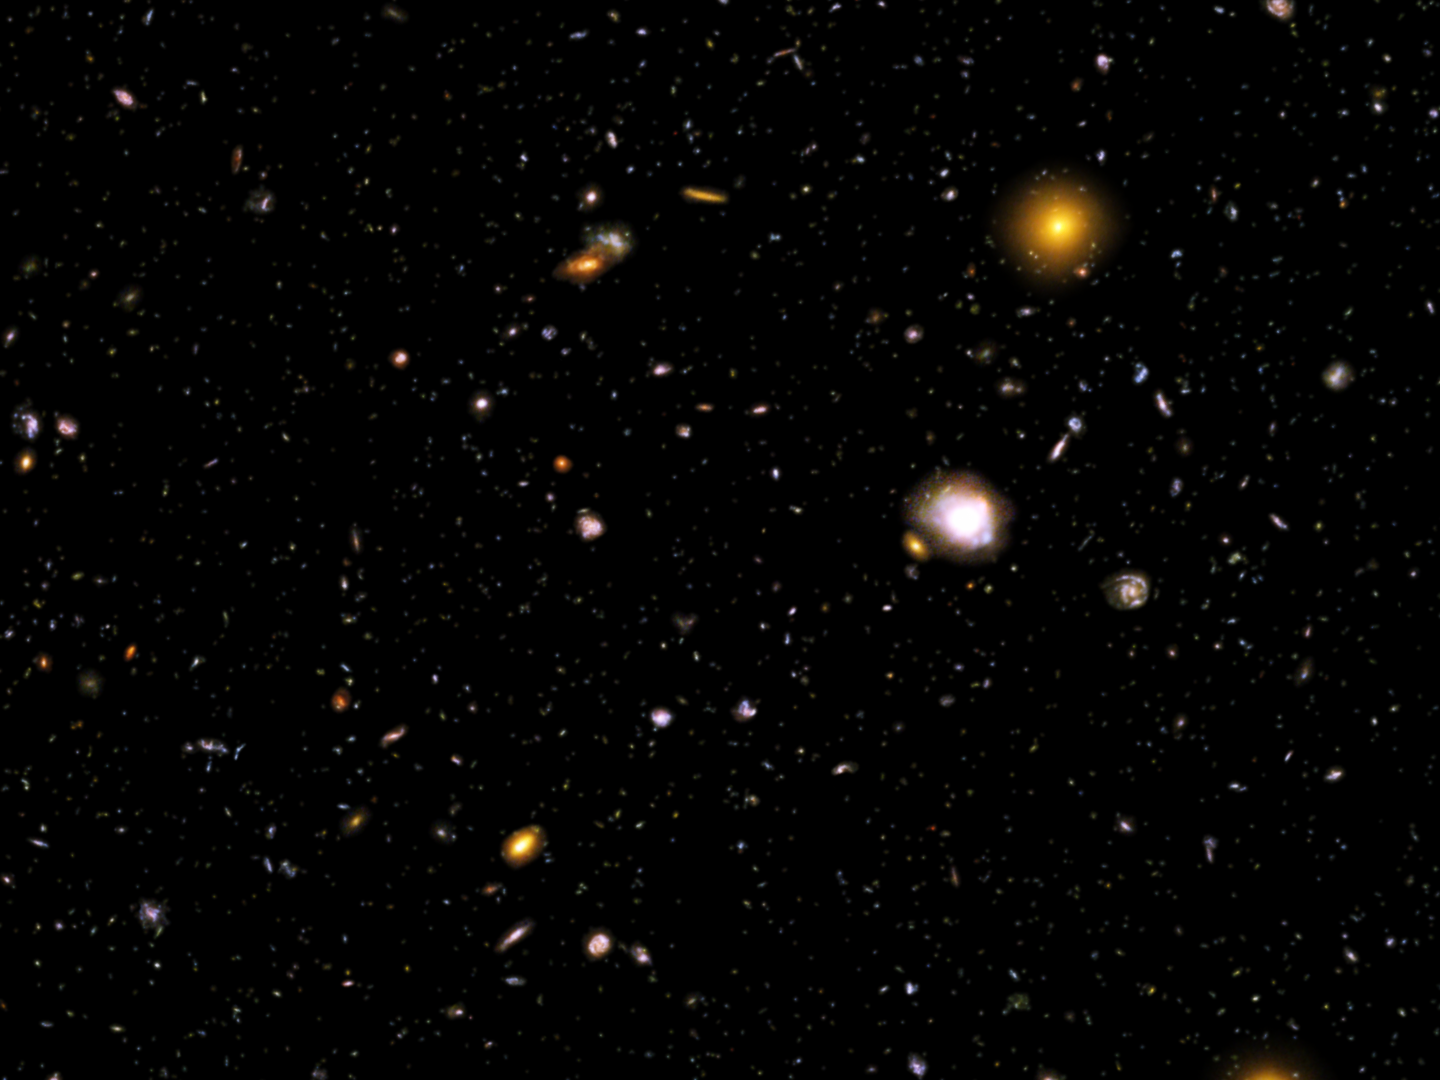 Within this image are thousands of galaxies located many billions of light-years away. Many of these galaxies are too small and too faint to be otherwise seen, but are made visible by the Hubble Space Telescope.